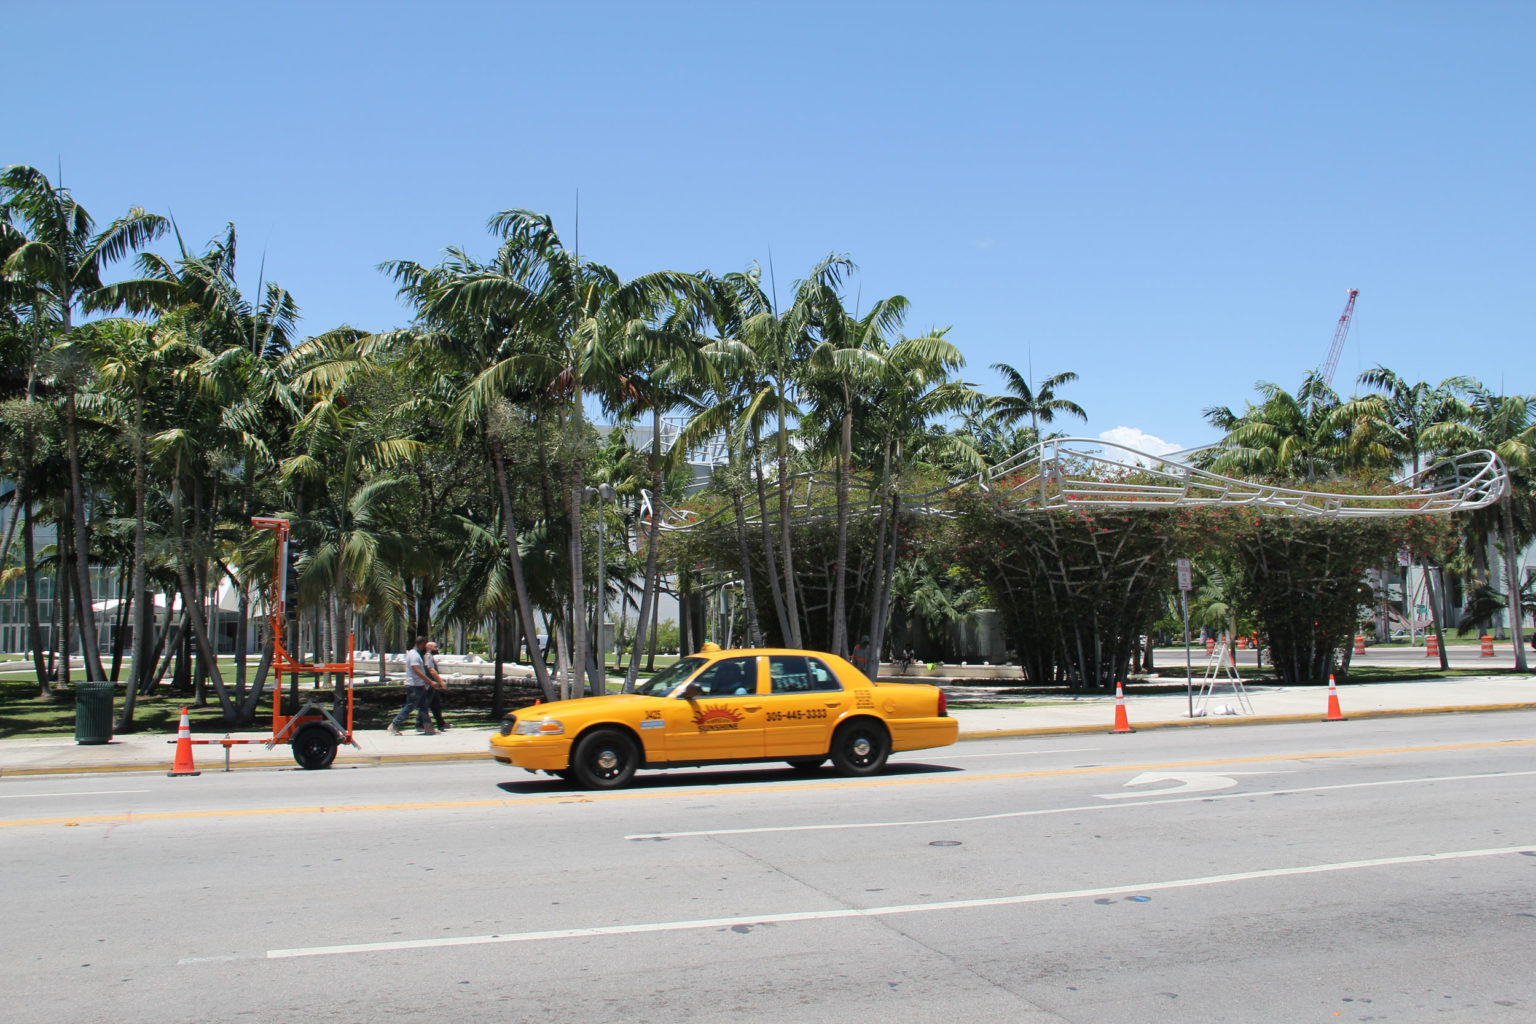 Yellow-Cab Miami Beach